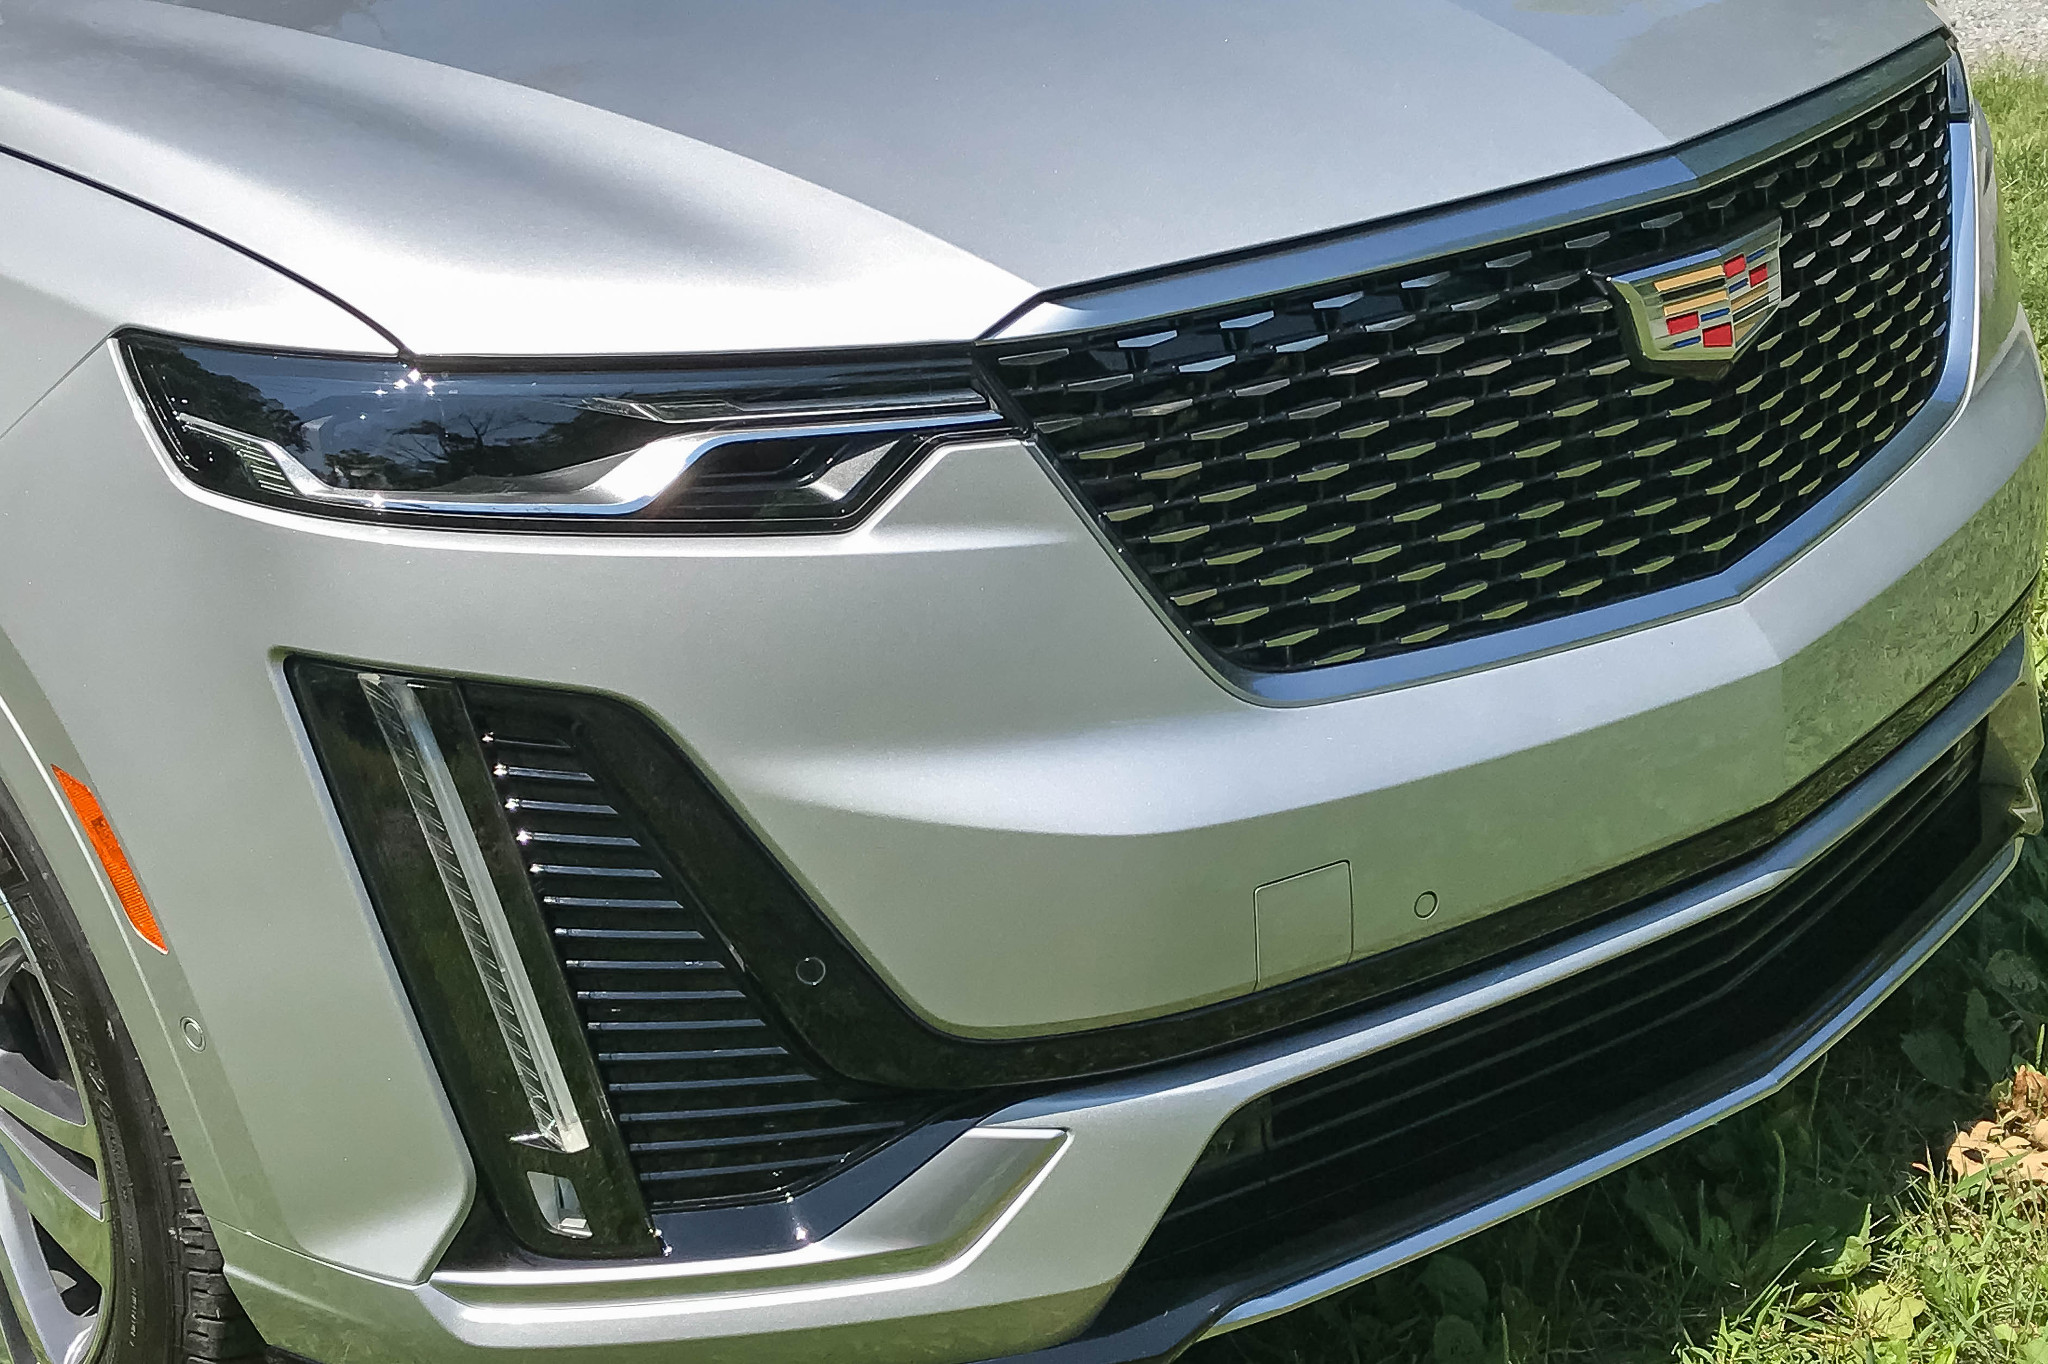 cadillac-xt6-2020-10-detail--exterior--front--grille--headlights--silver.jpg